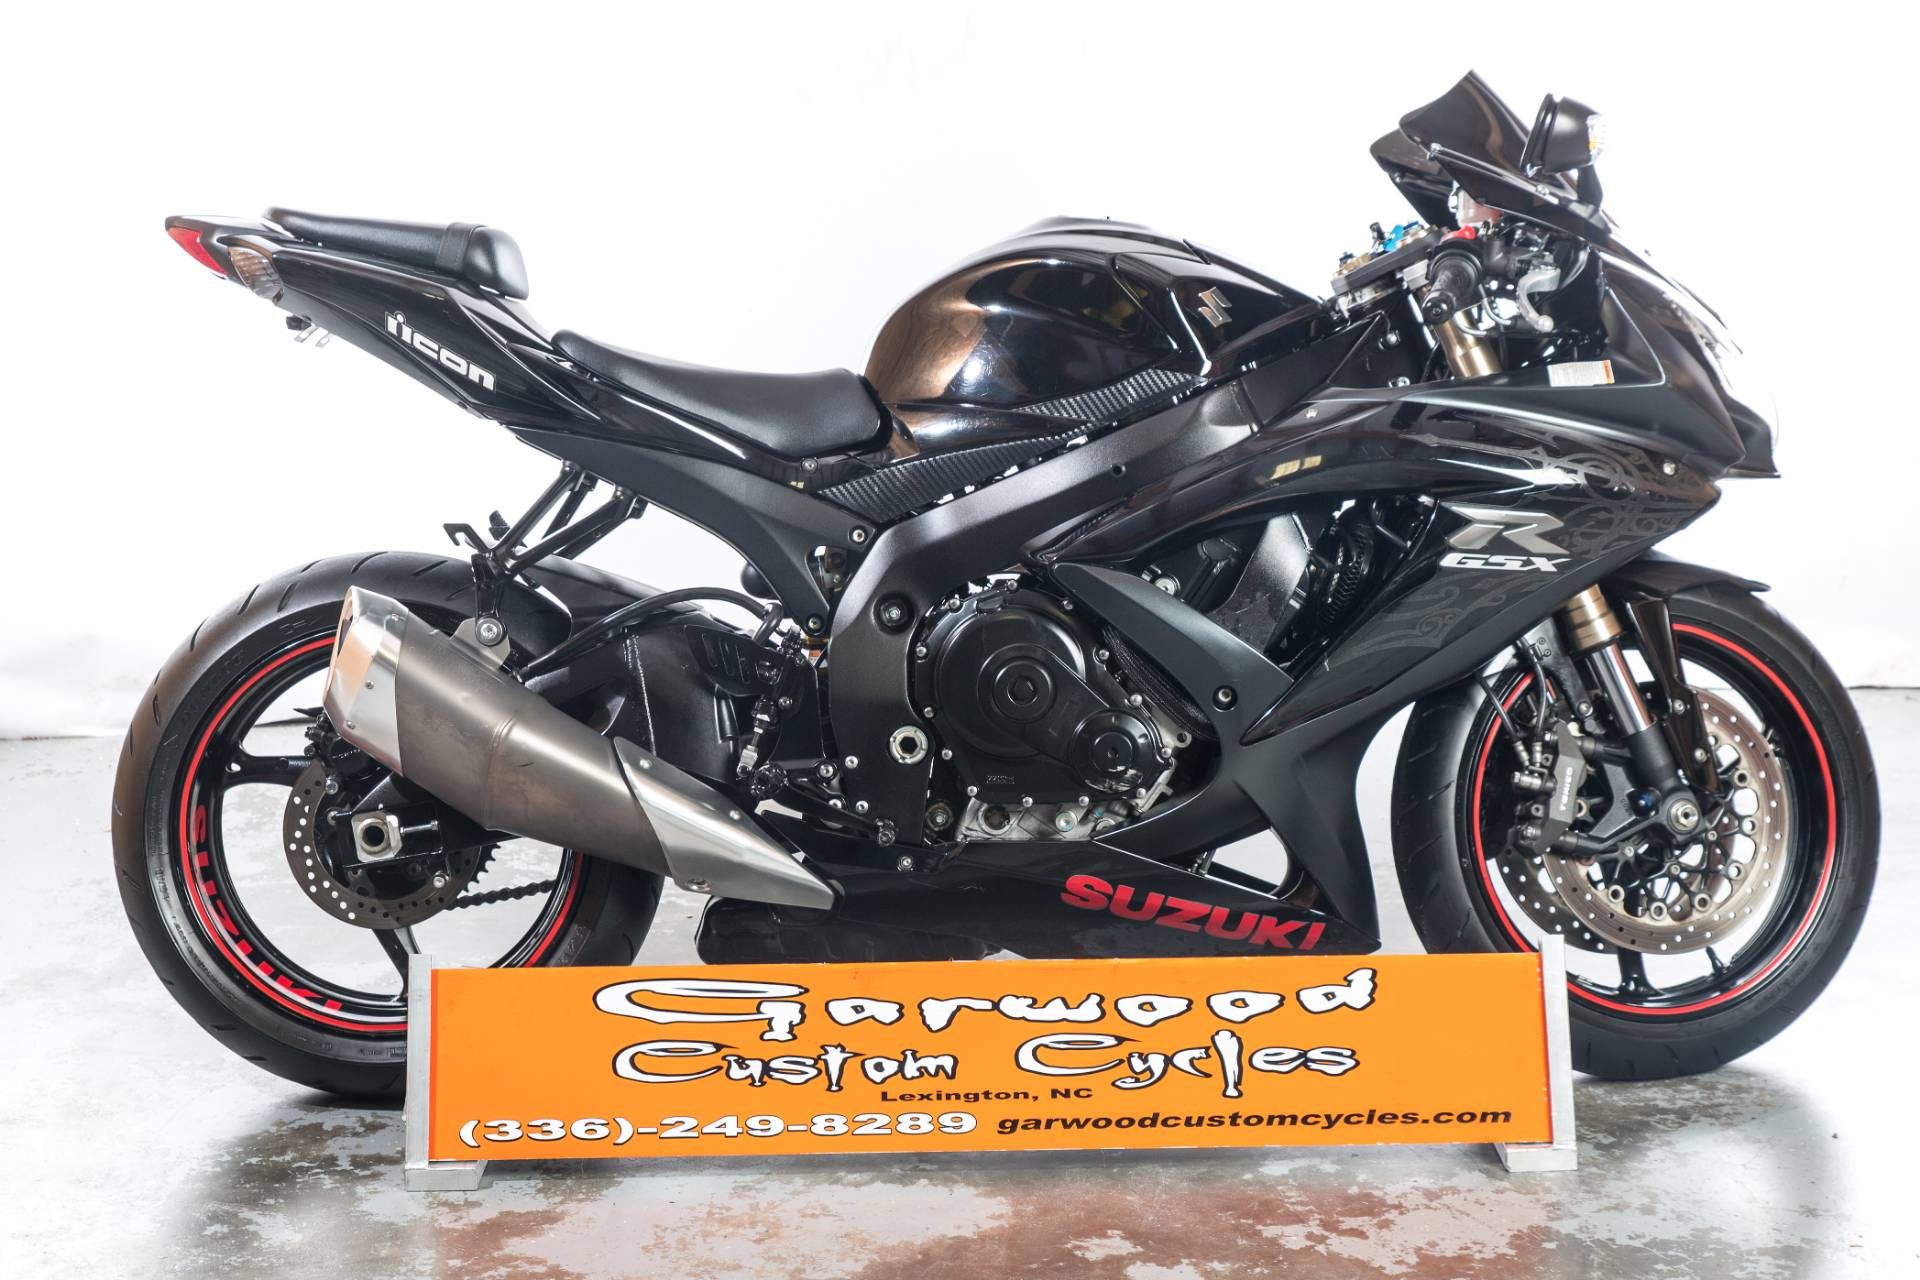 2009 Suzuki GSX-R600 in Lexington, North Carolina - Photo 1